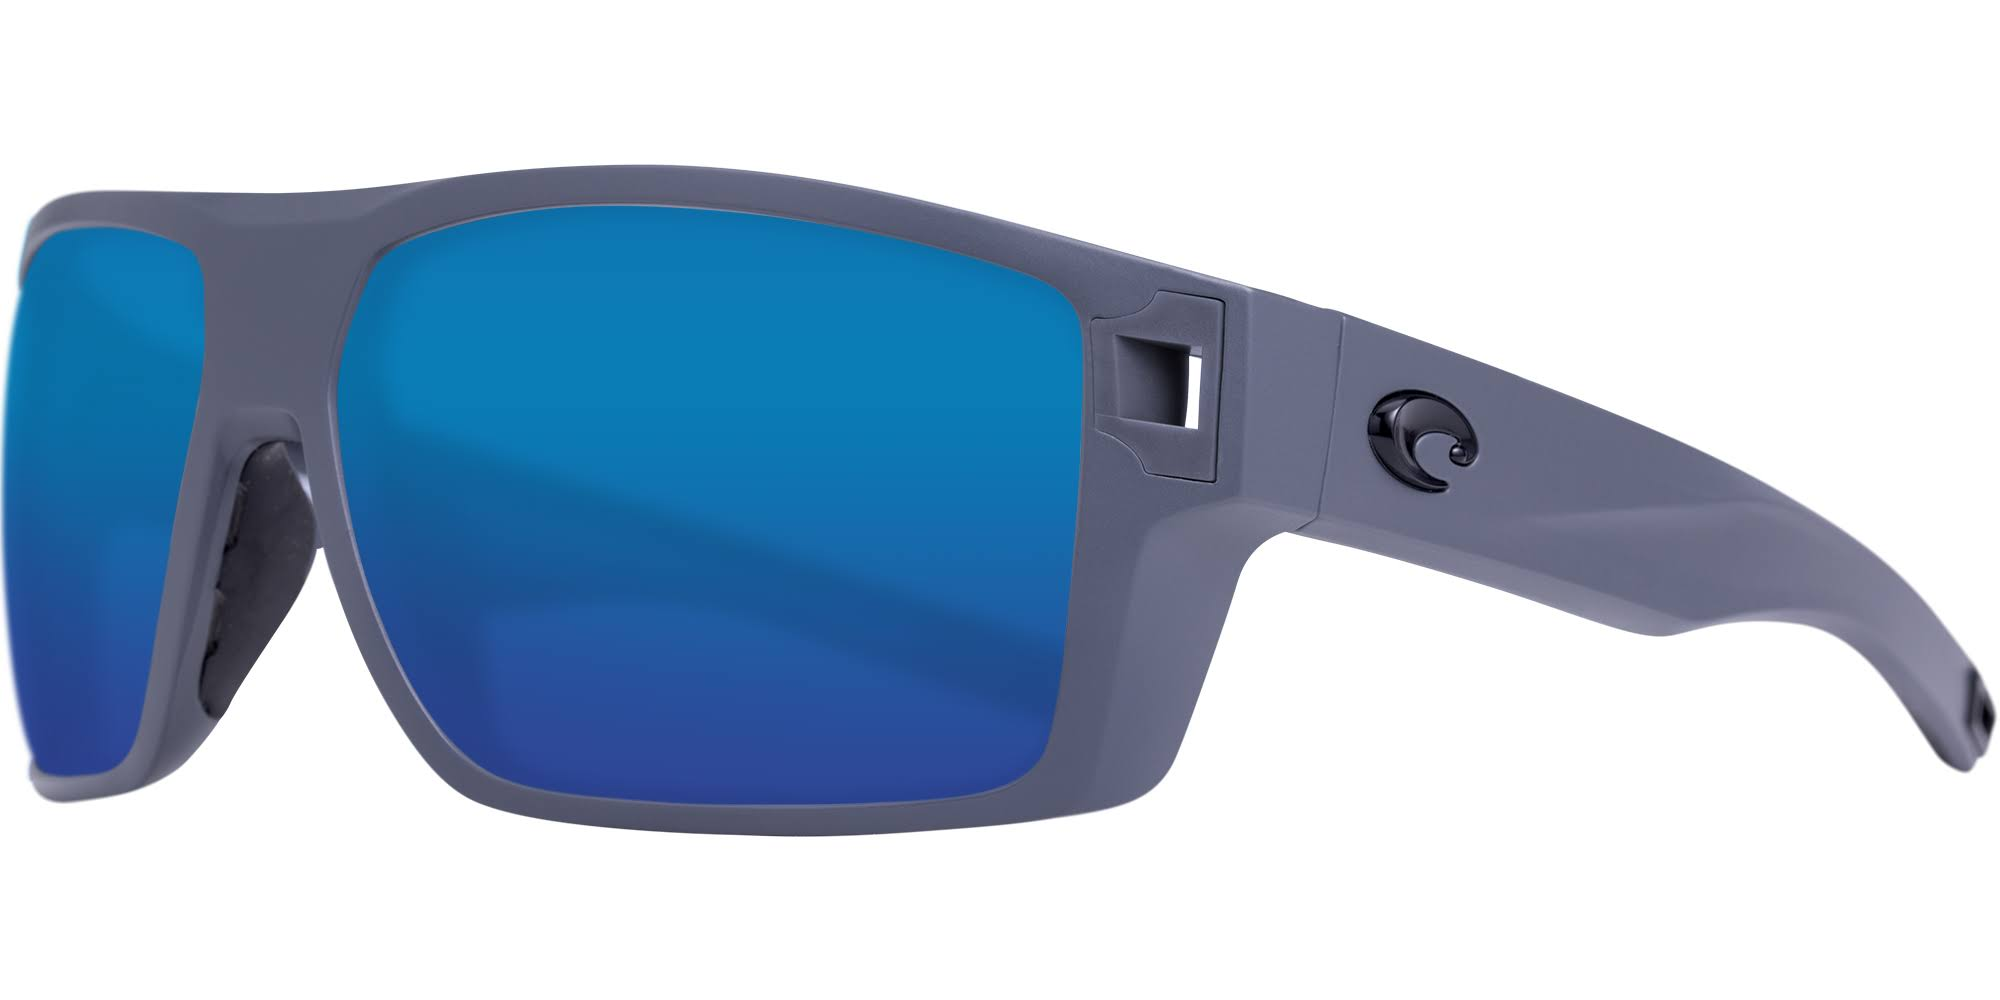 Costa Diego 580G Polarized Sunglasses Matte Gray/Blue Mirror, One Size